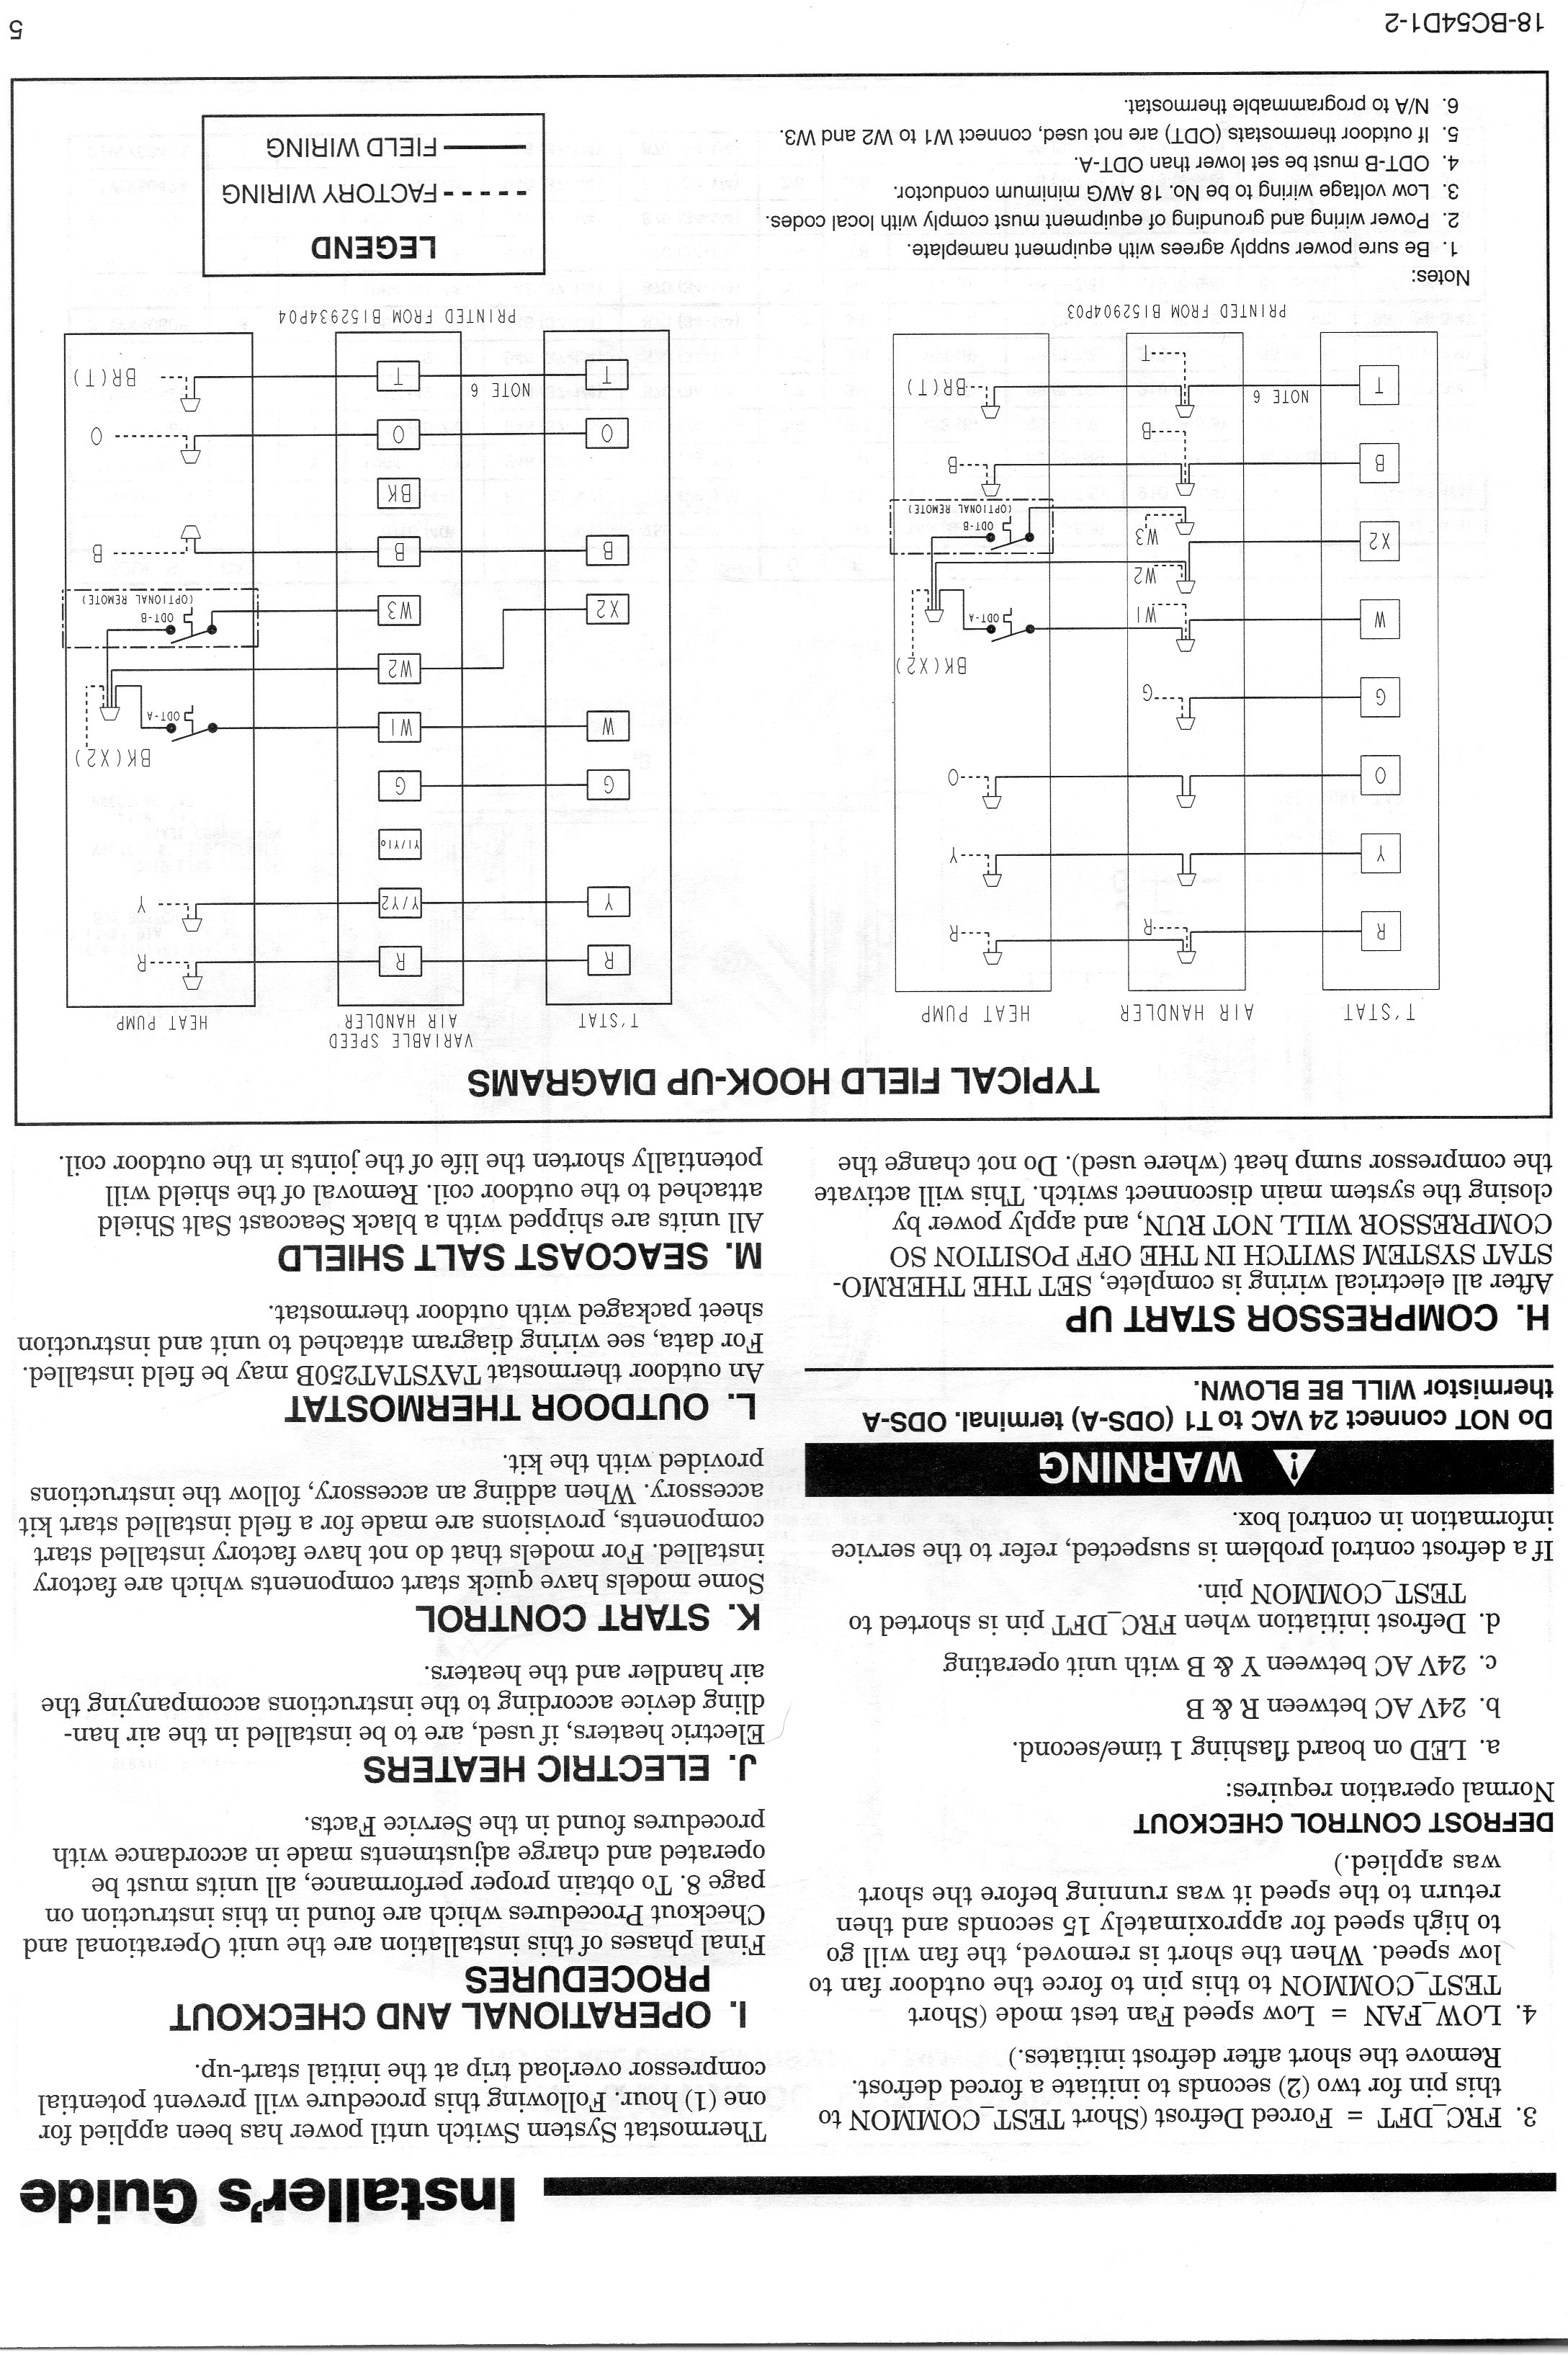 Adc T2000 Heat Pump Issue Suretydiy Security And Automation Ac Wiring Img001